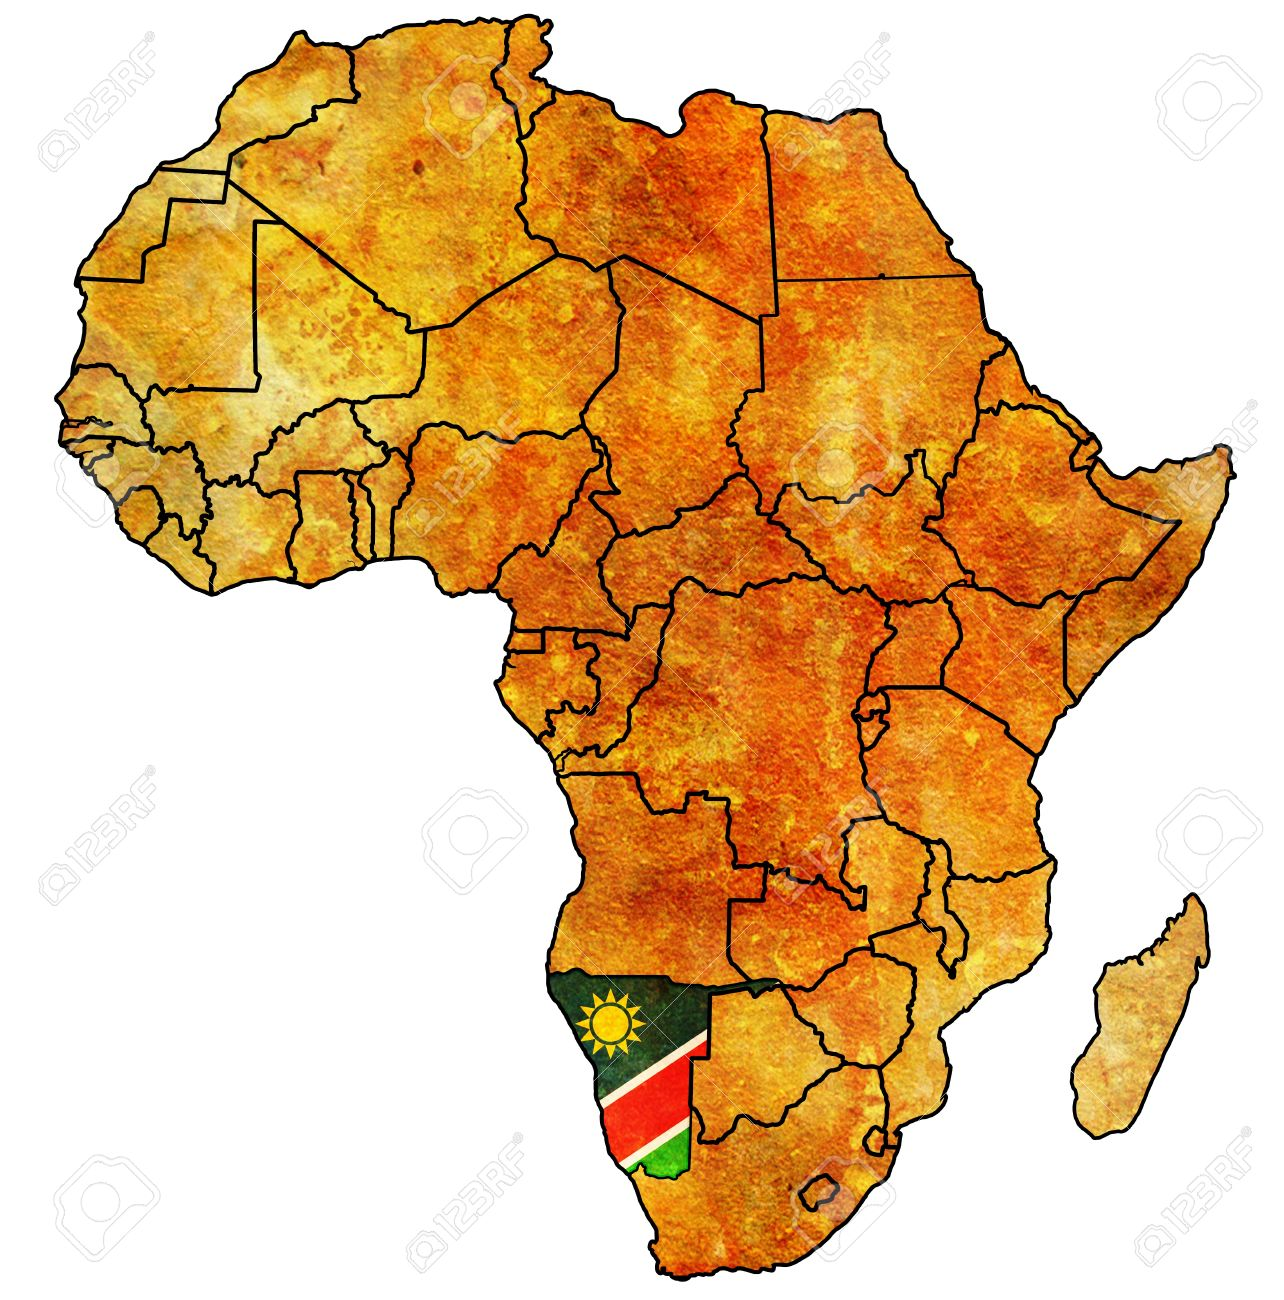 Namibia On Actual Vintage Political Map Of Africa With Flags Stock